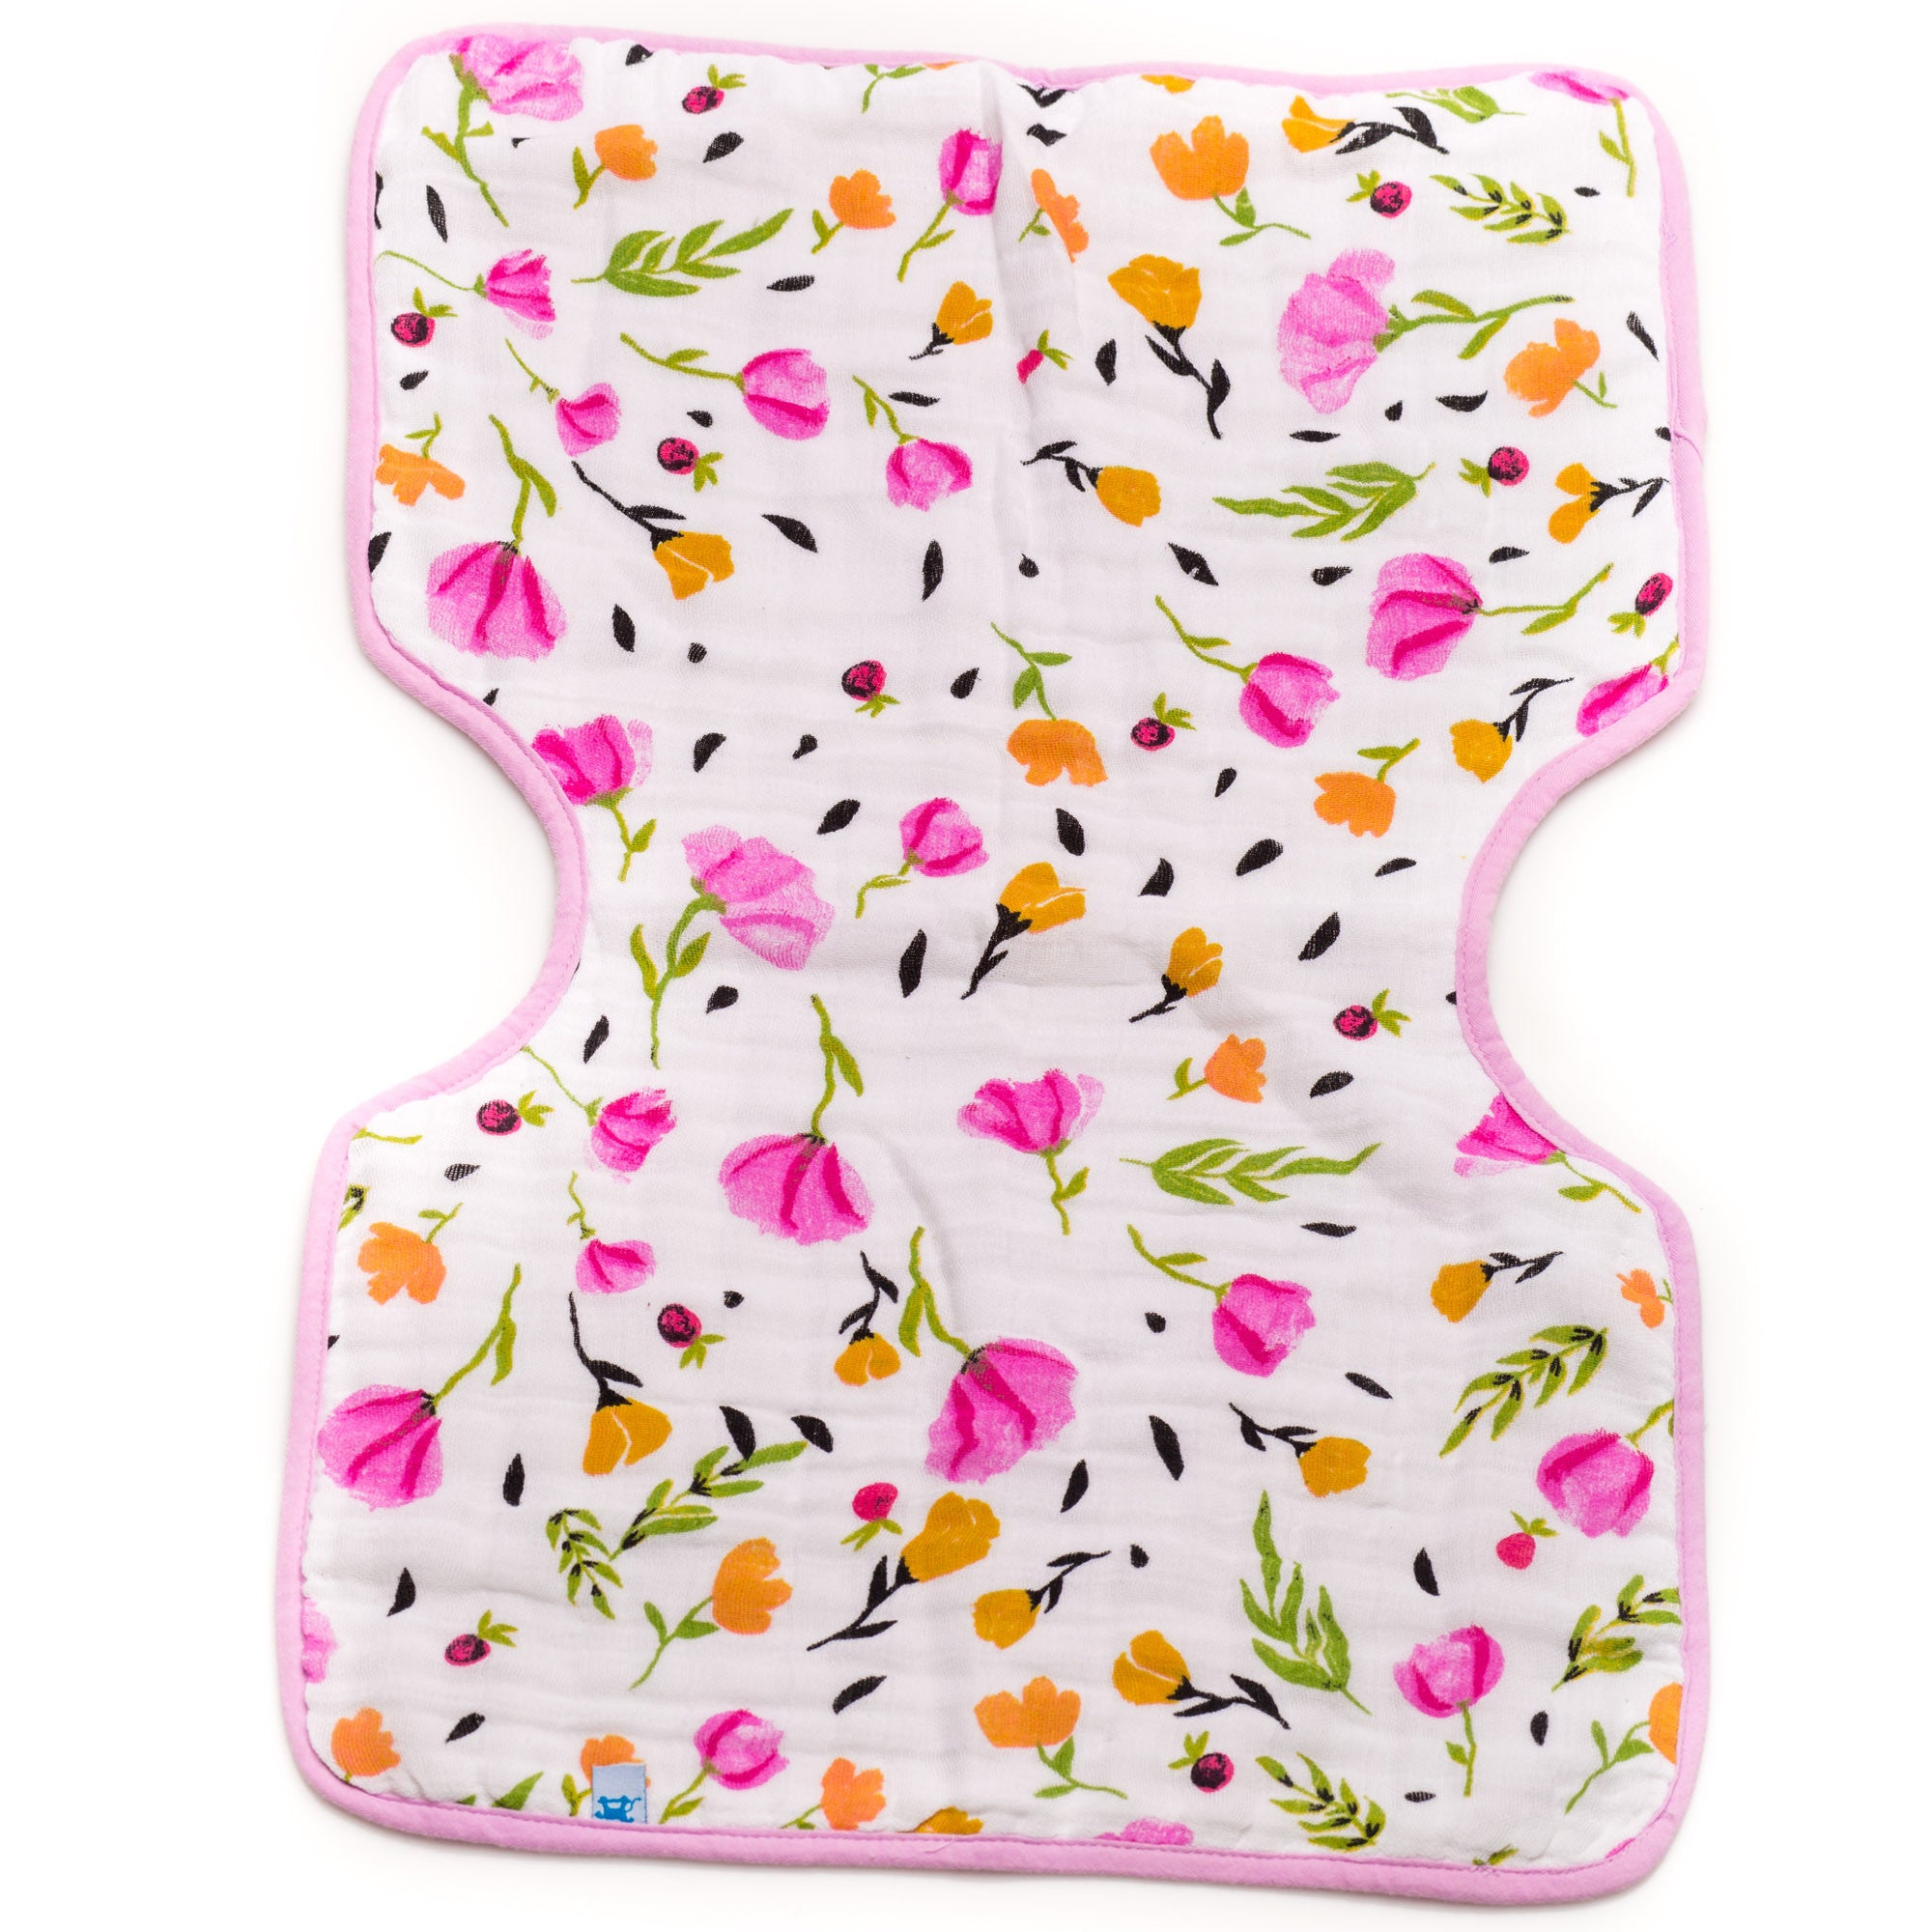 Soft Burp Cloth by Little Unicorn at Bonjour Baby Baskets